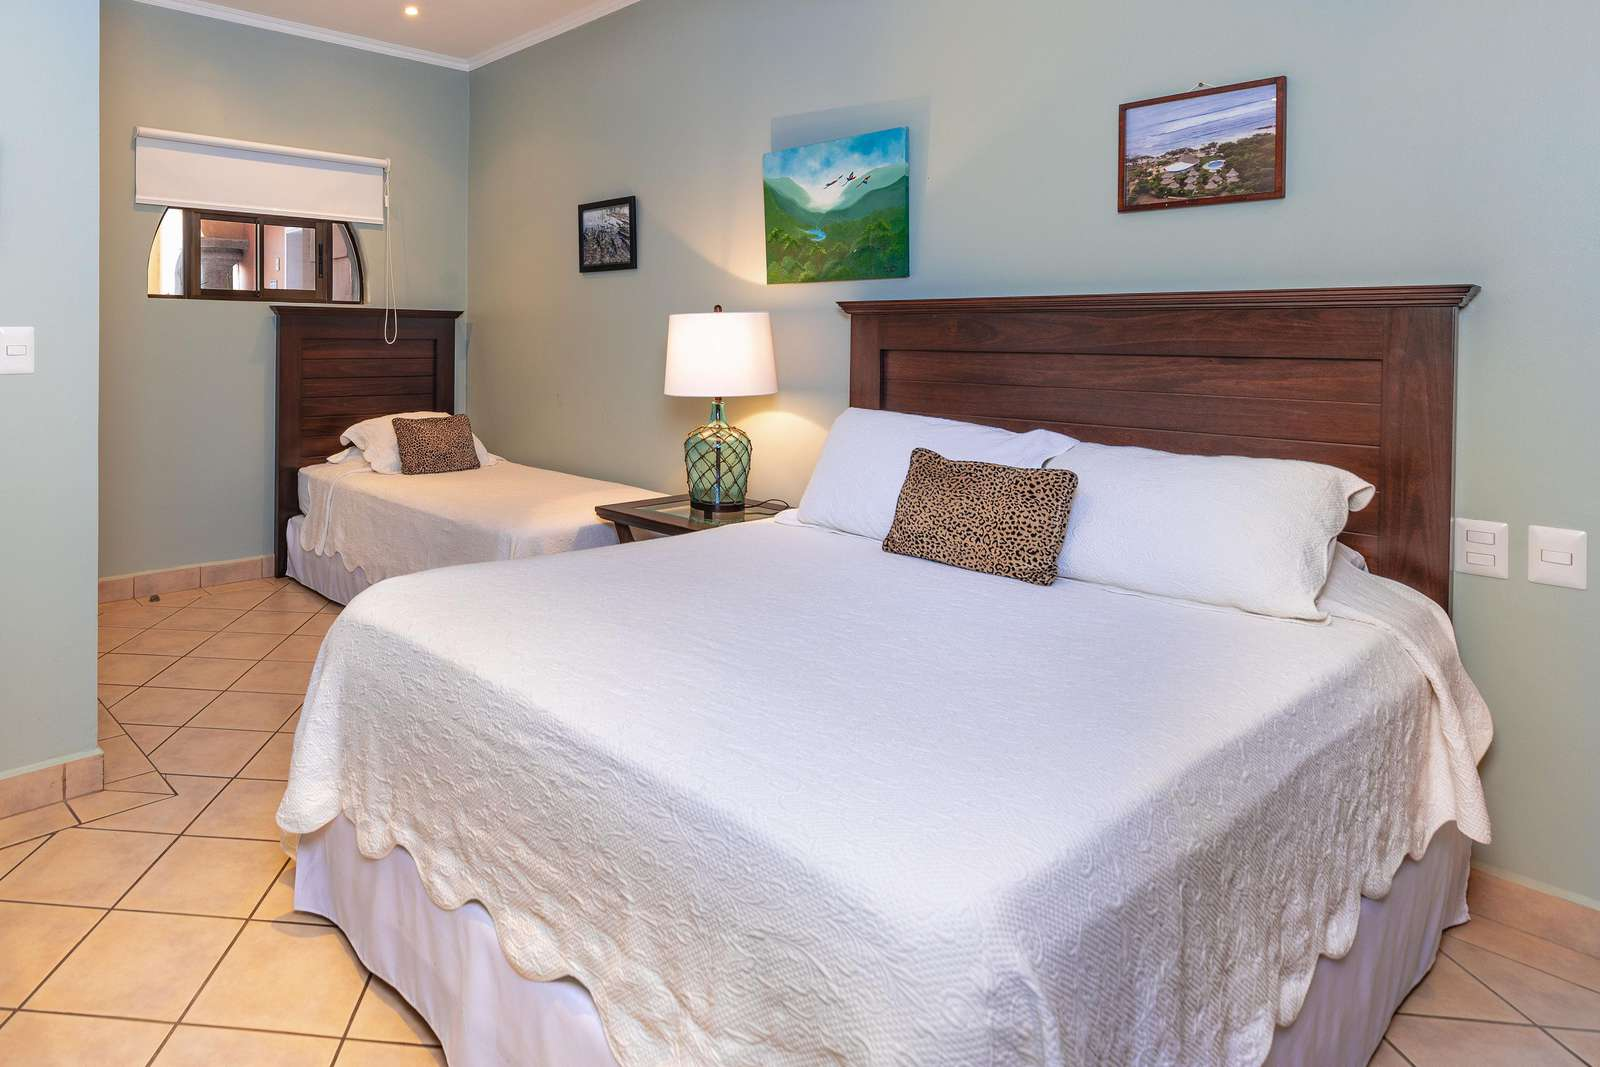 Guest bedroom, Queen bed and Twin size bed, TV, Full Bathroom